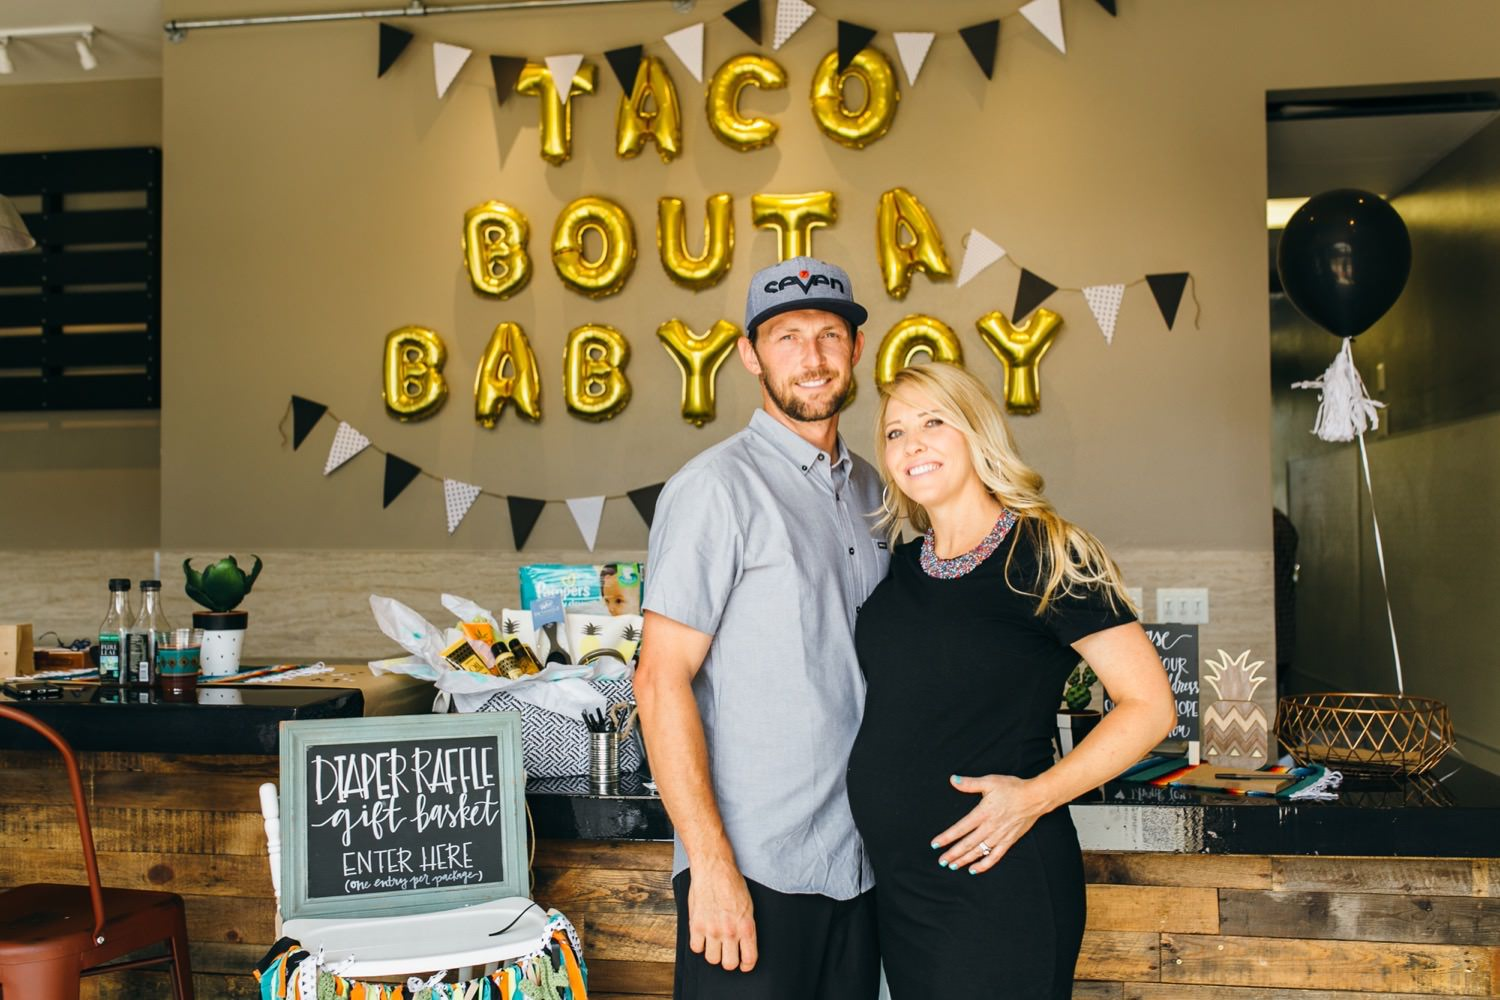 Claremont Baby Shower - Baby Shower Inspiration - https://brittneyhannonphotography.com